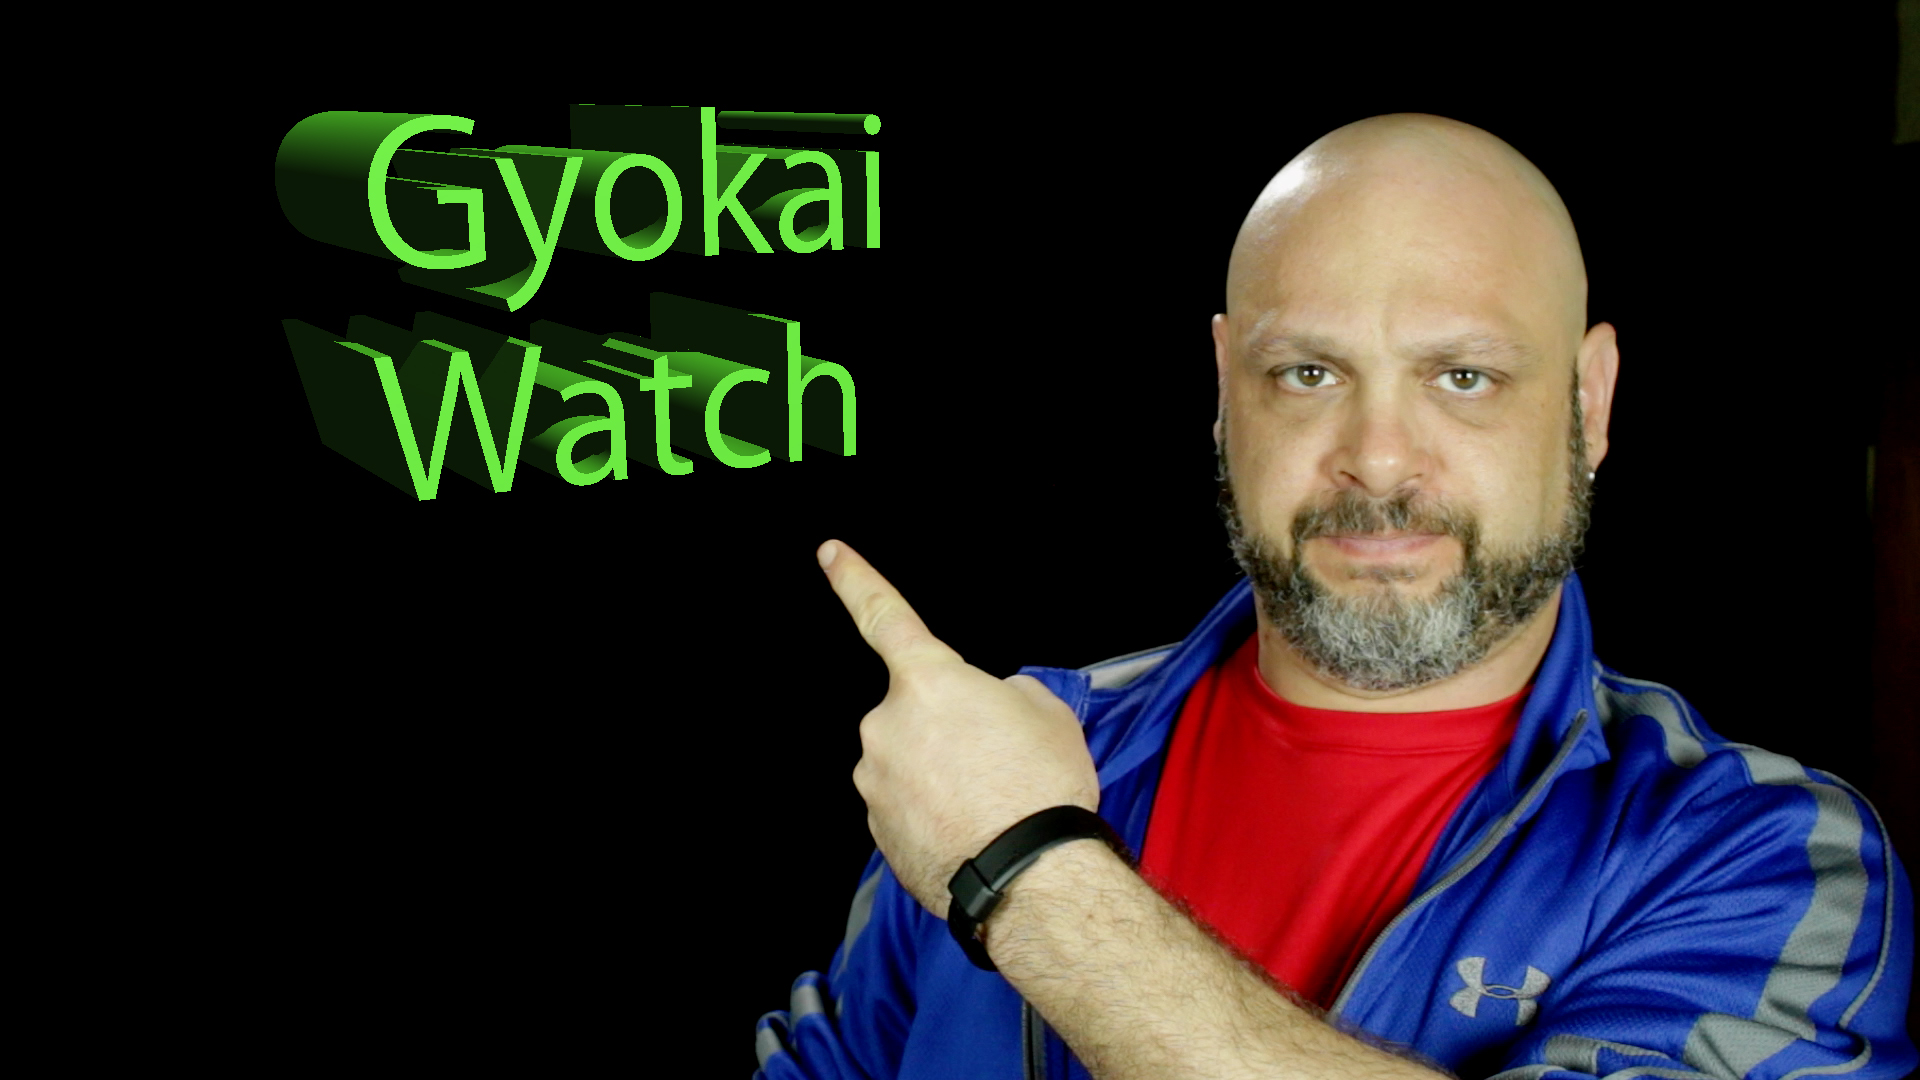 Gyokai Watch